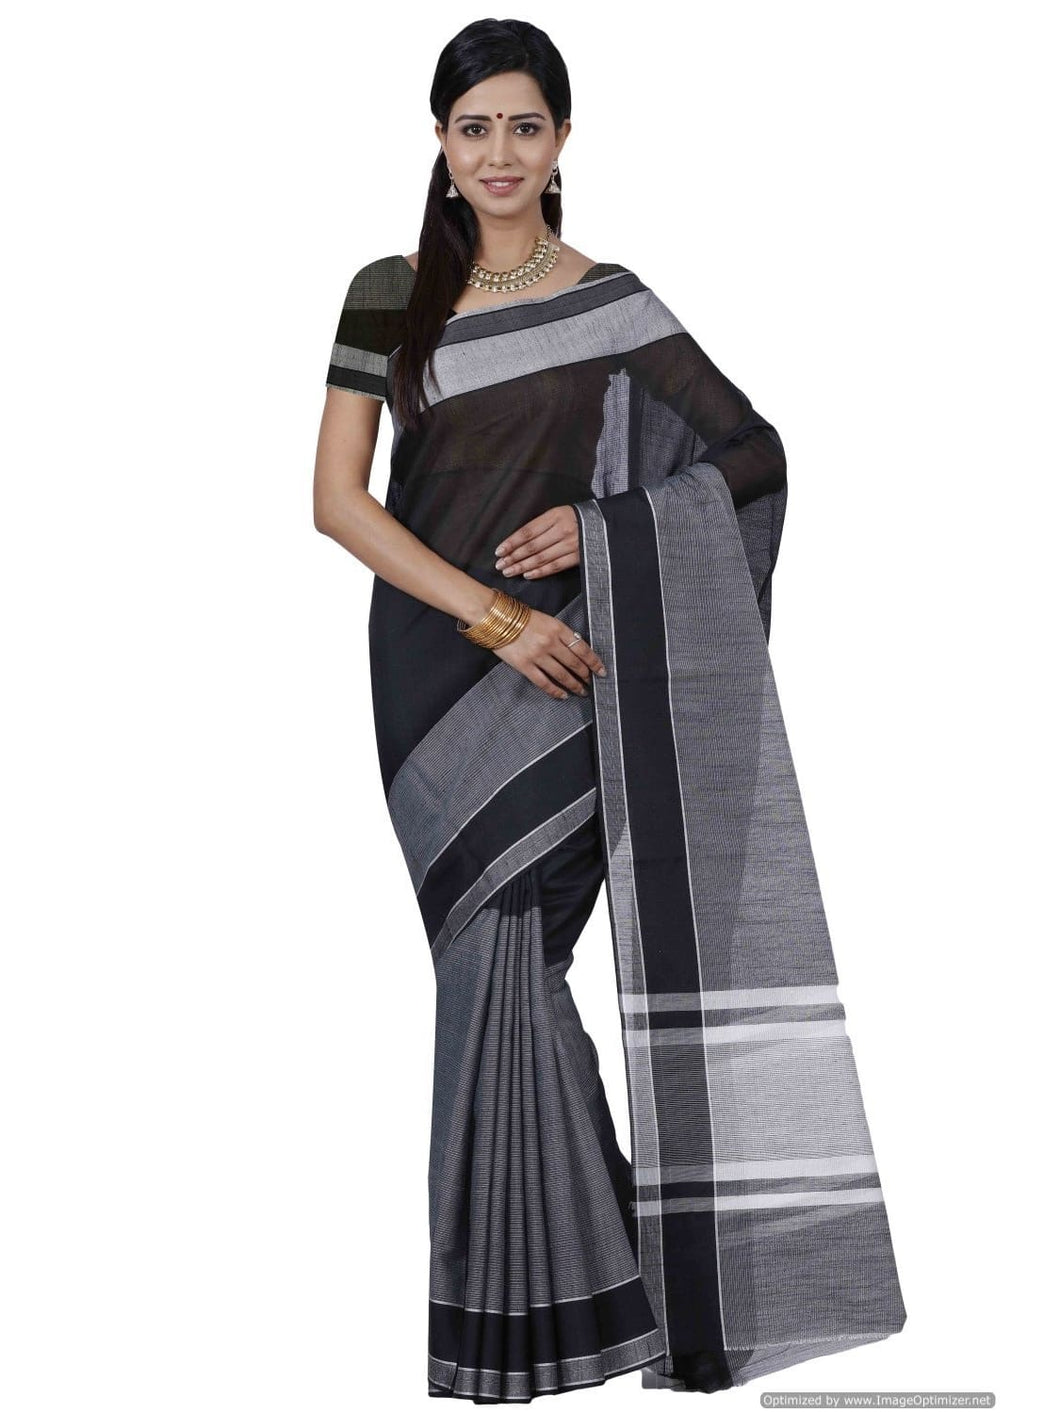 MIMOSA Plain Design Banarasi Style Cotton Saree with Blouse in Color Grey (3401-nsm-1-grey) - kupindaindia